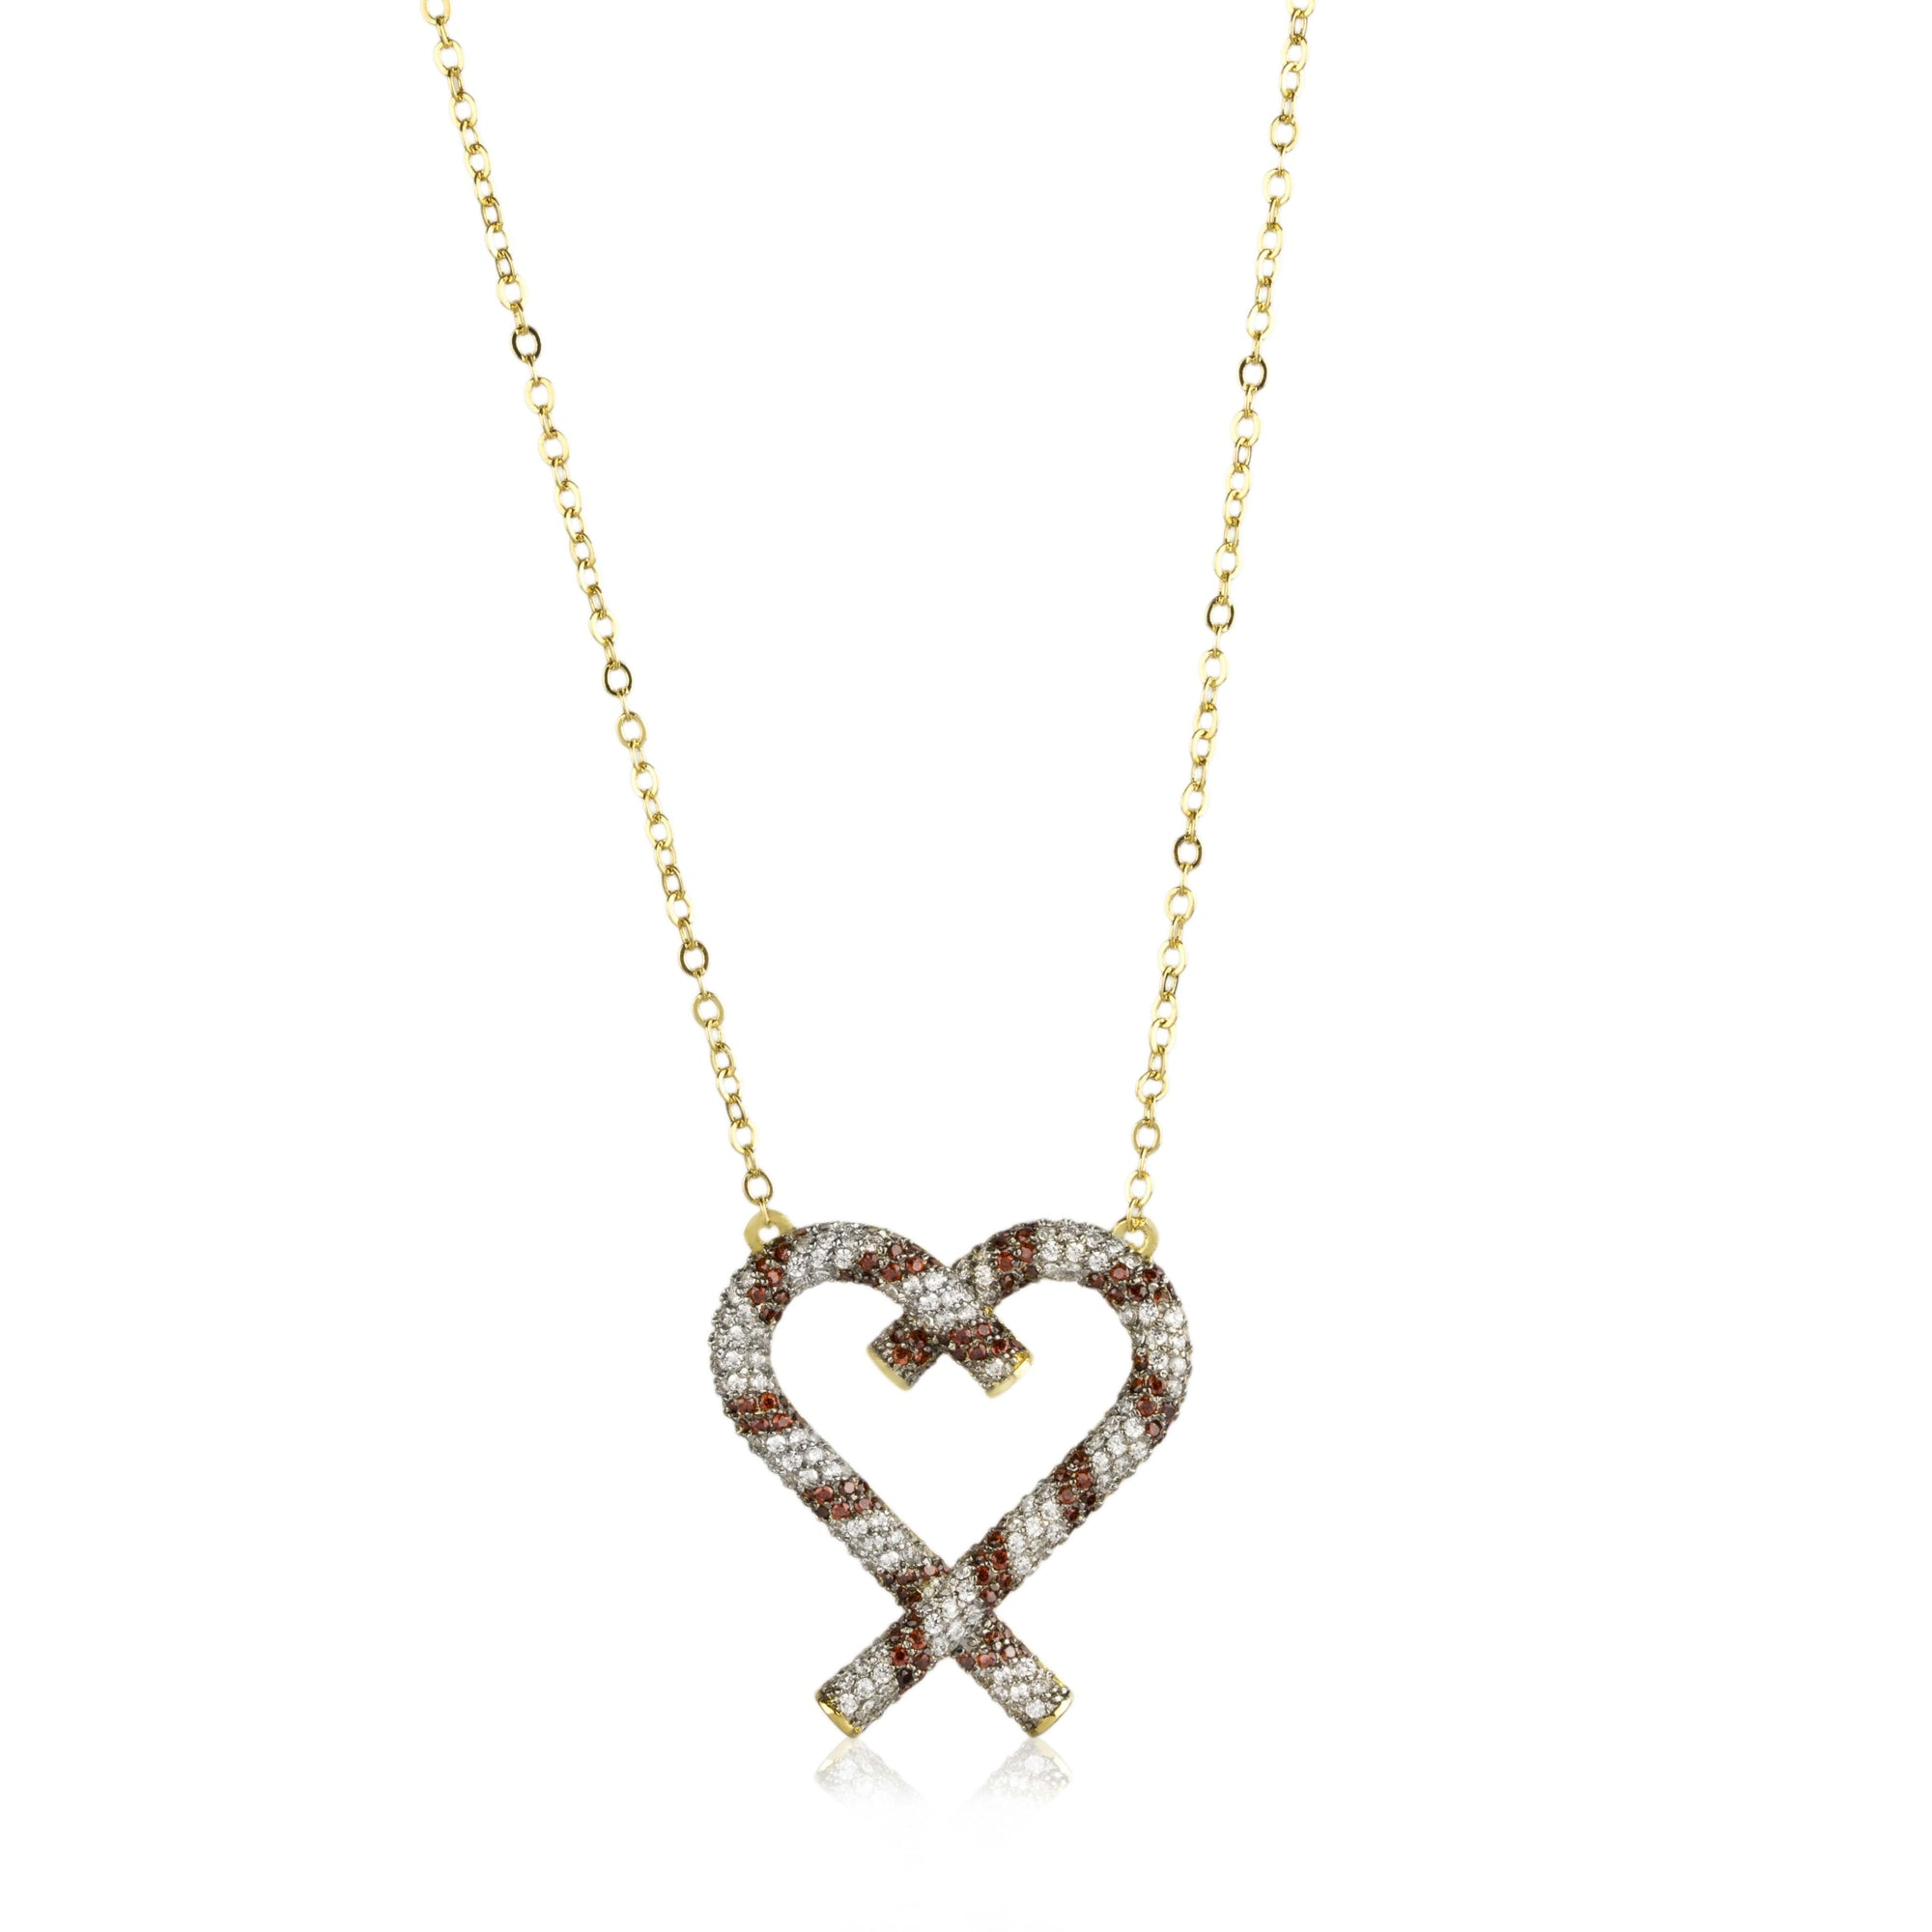 Candycane Heart Necklace